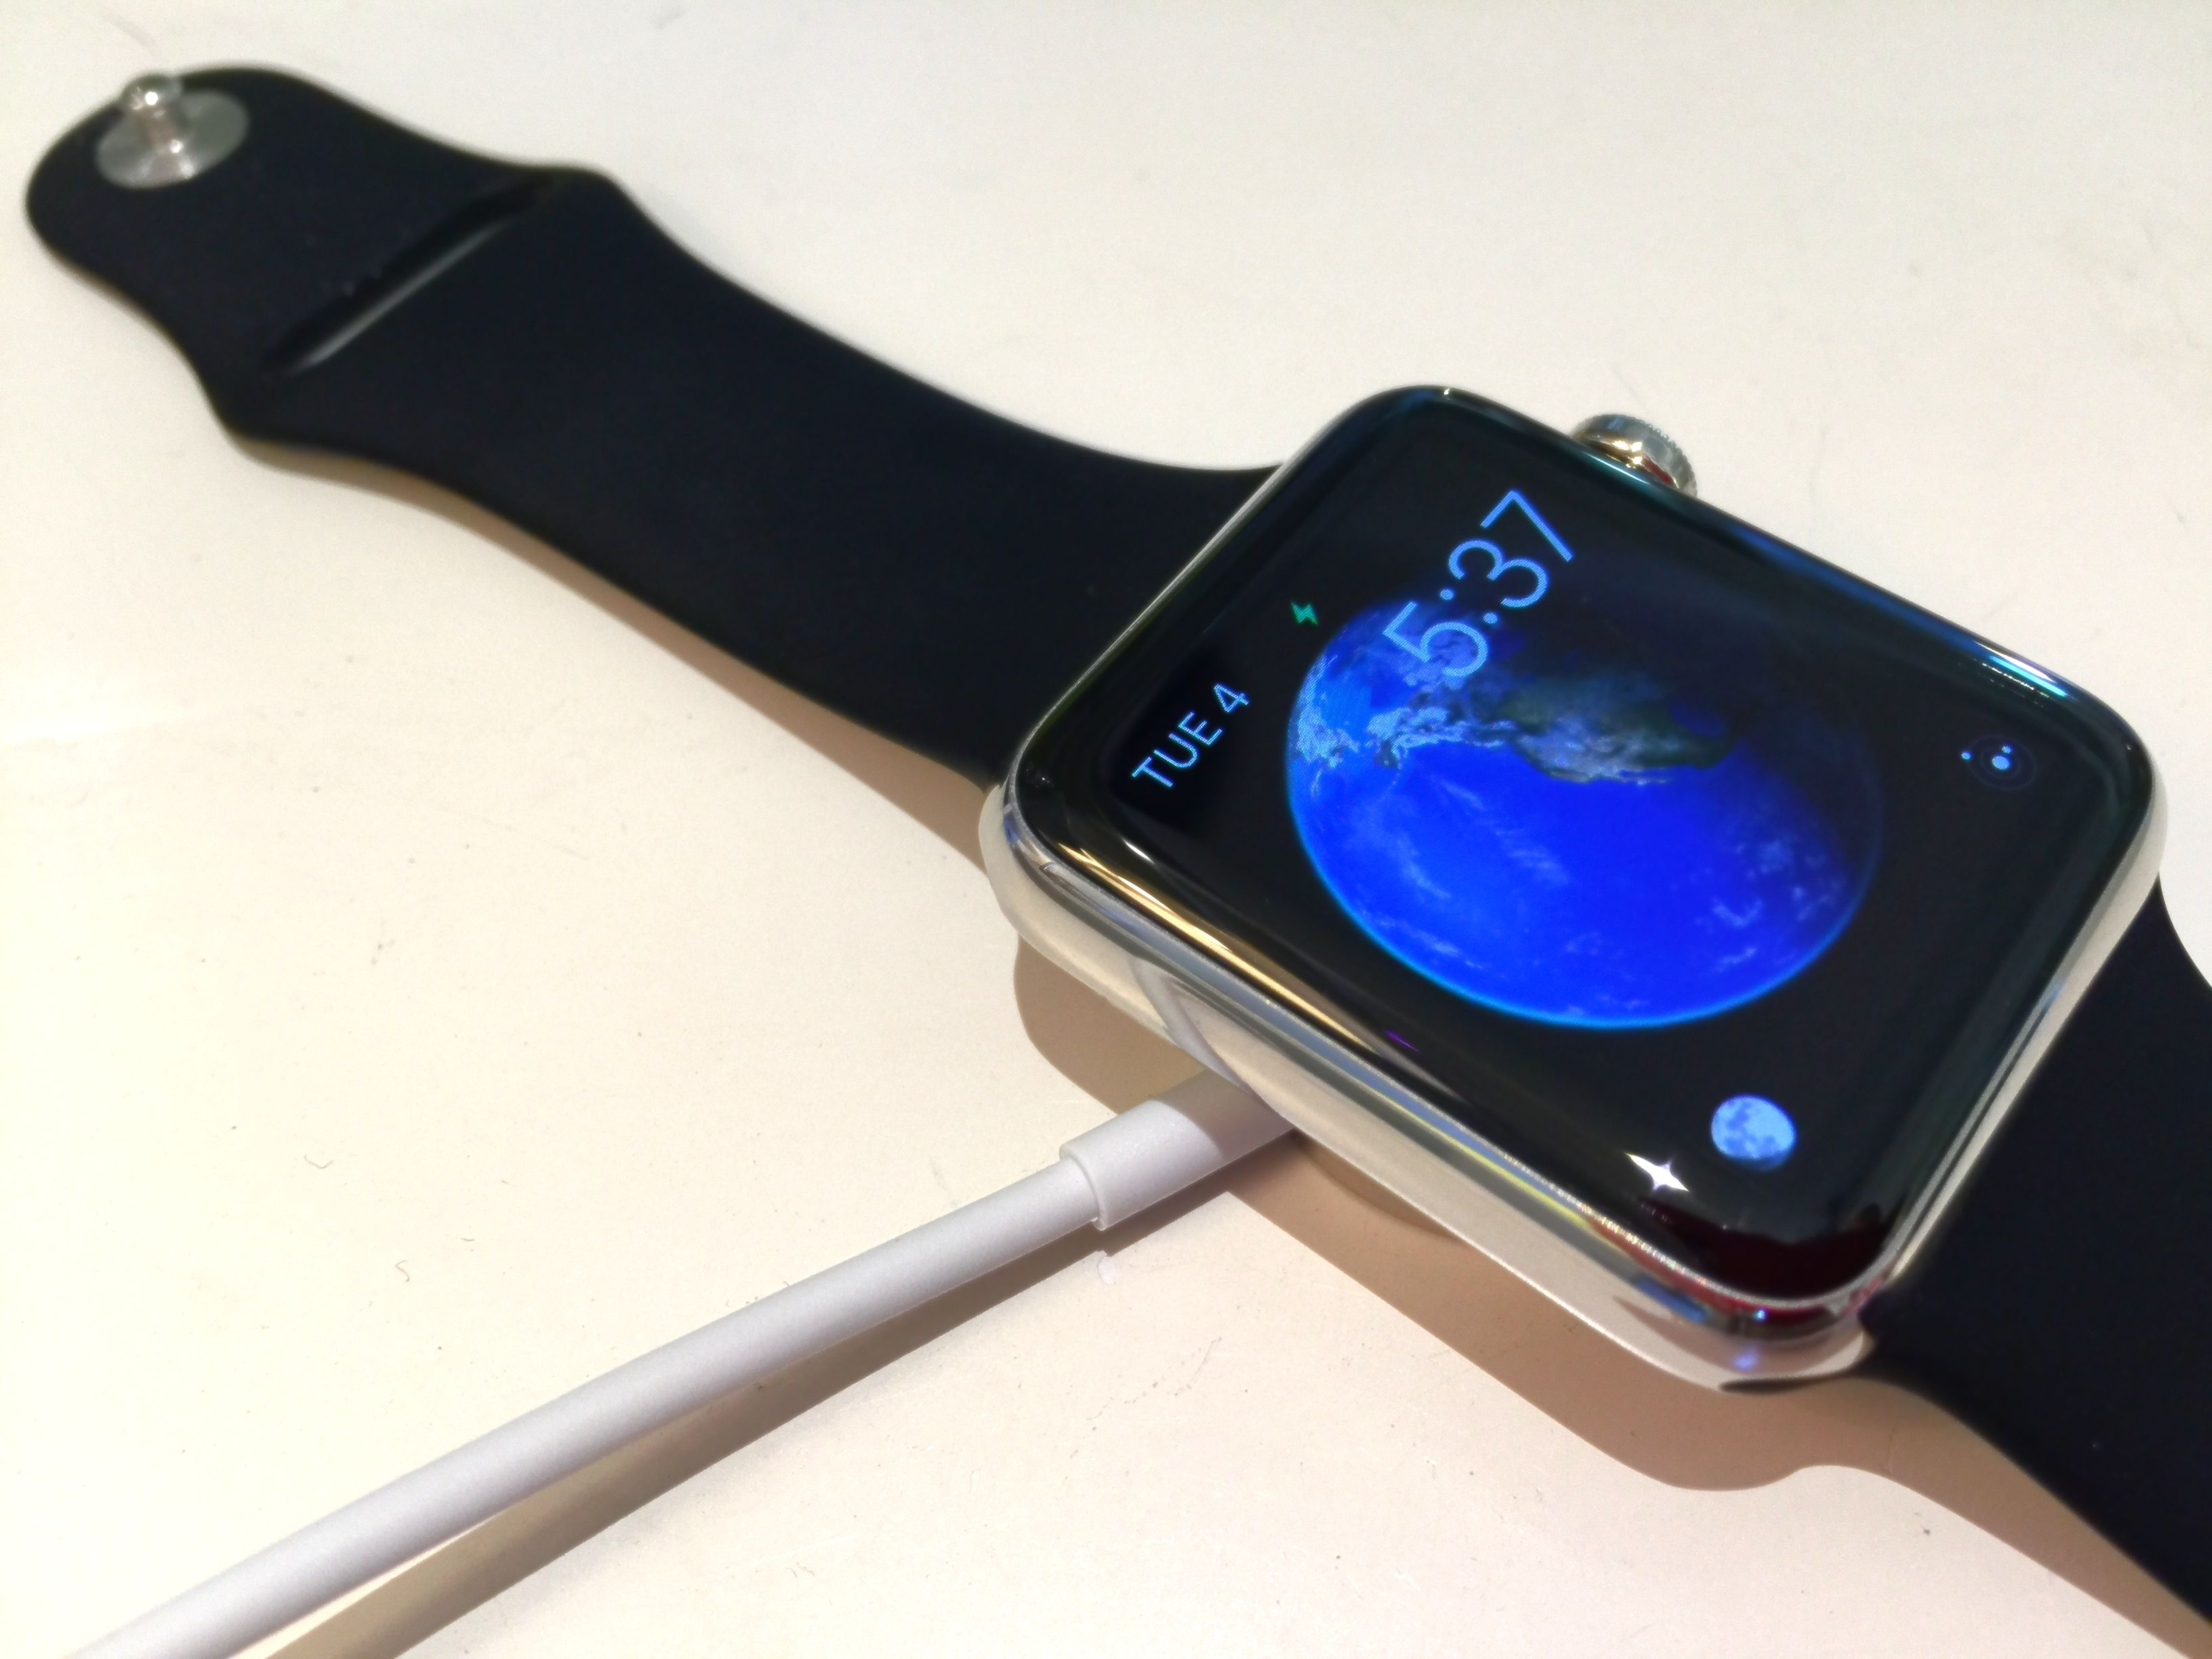 5 things I don't like about Apple Watch